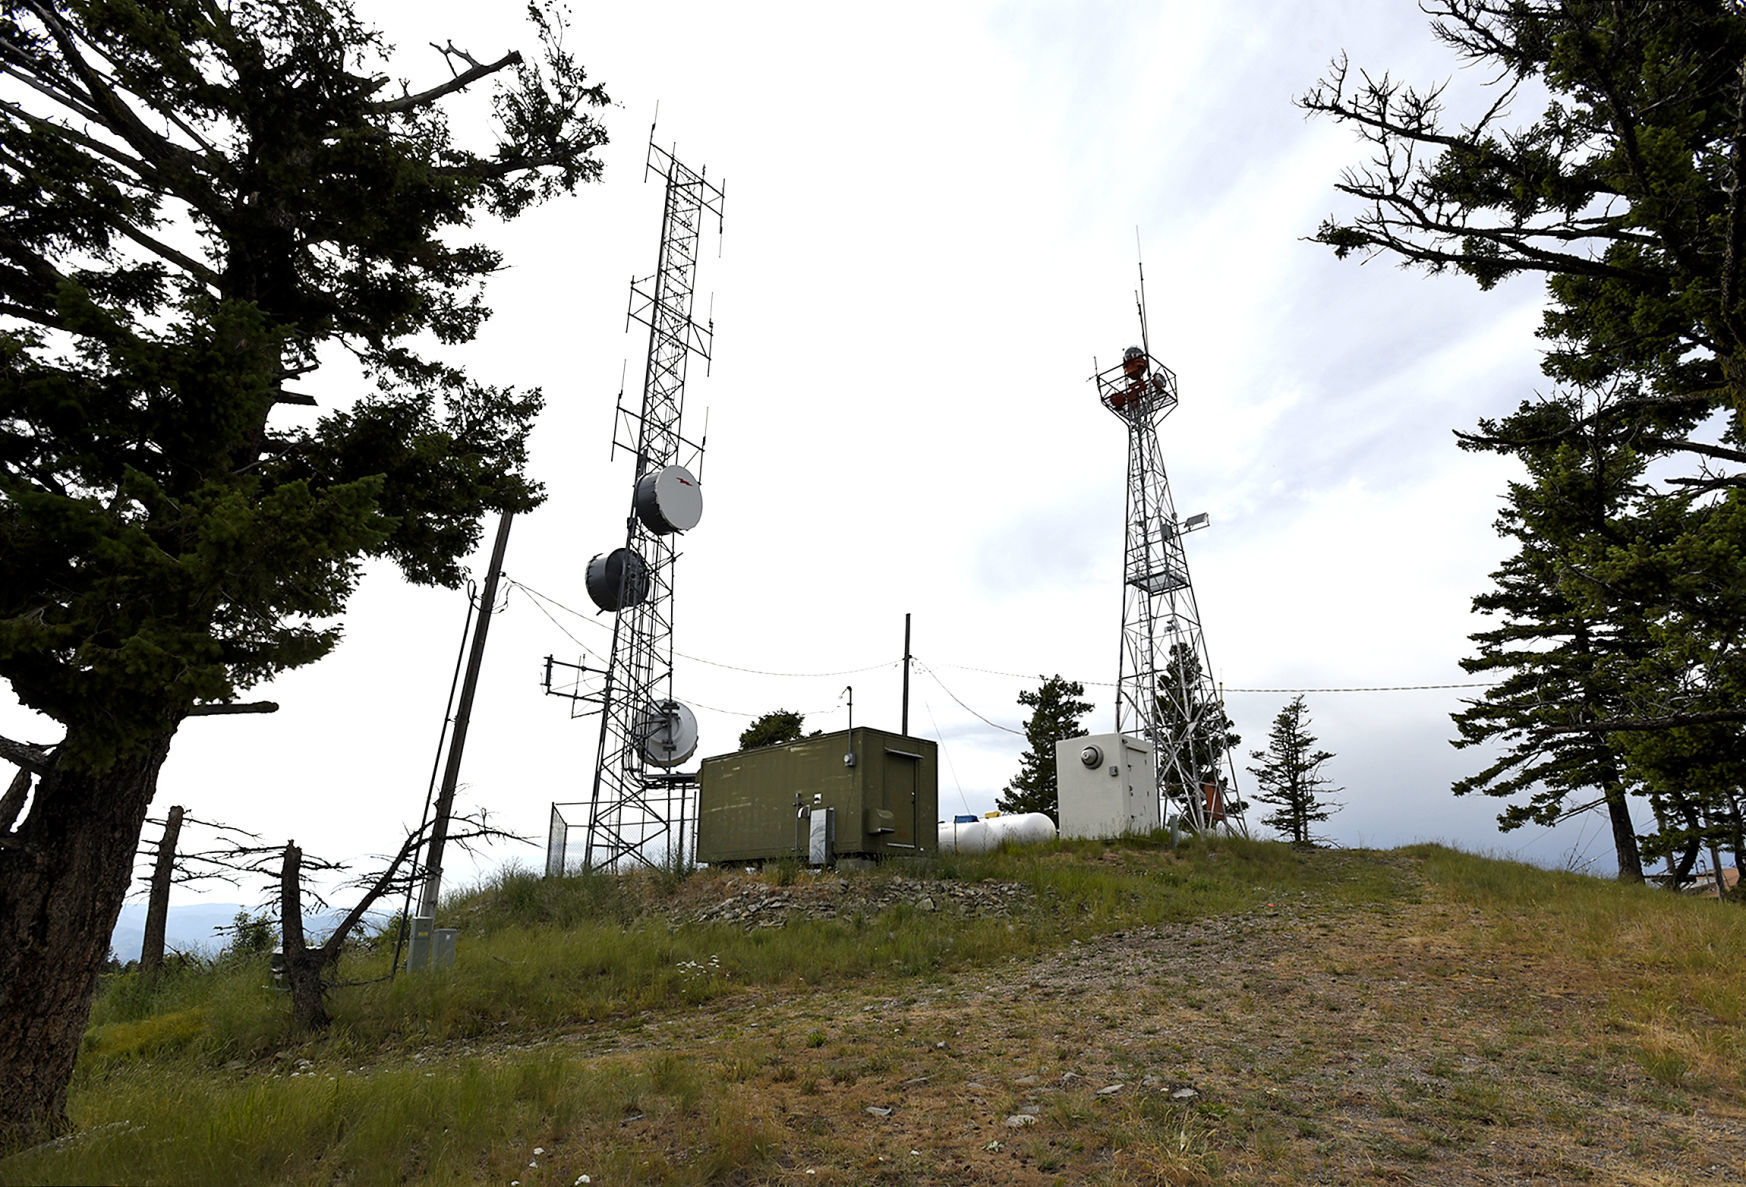 missoulian.com - Rob Chaney - Boosting broadband: Forest Service may change permits, access